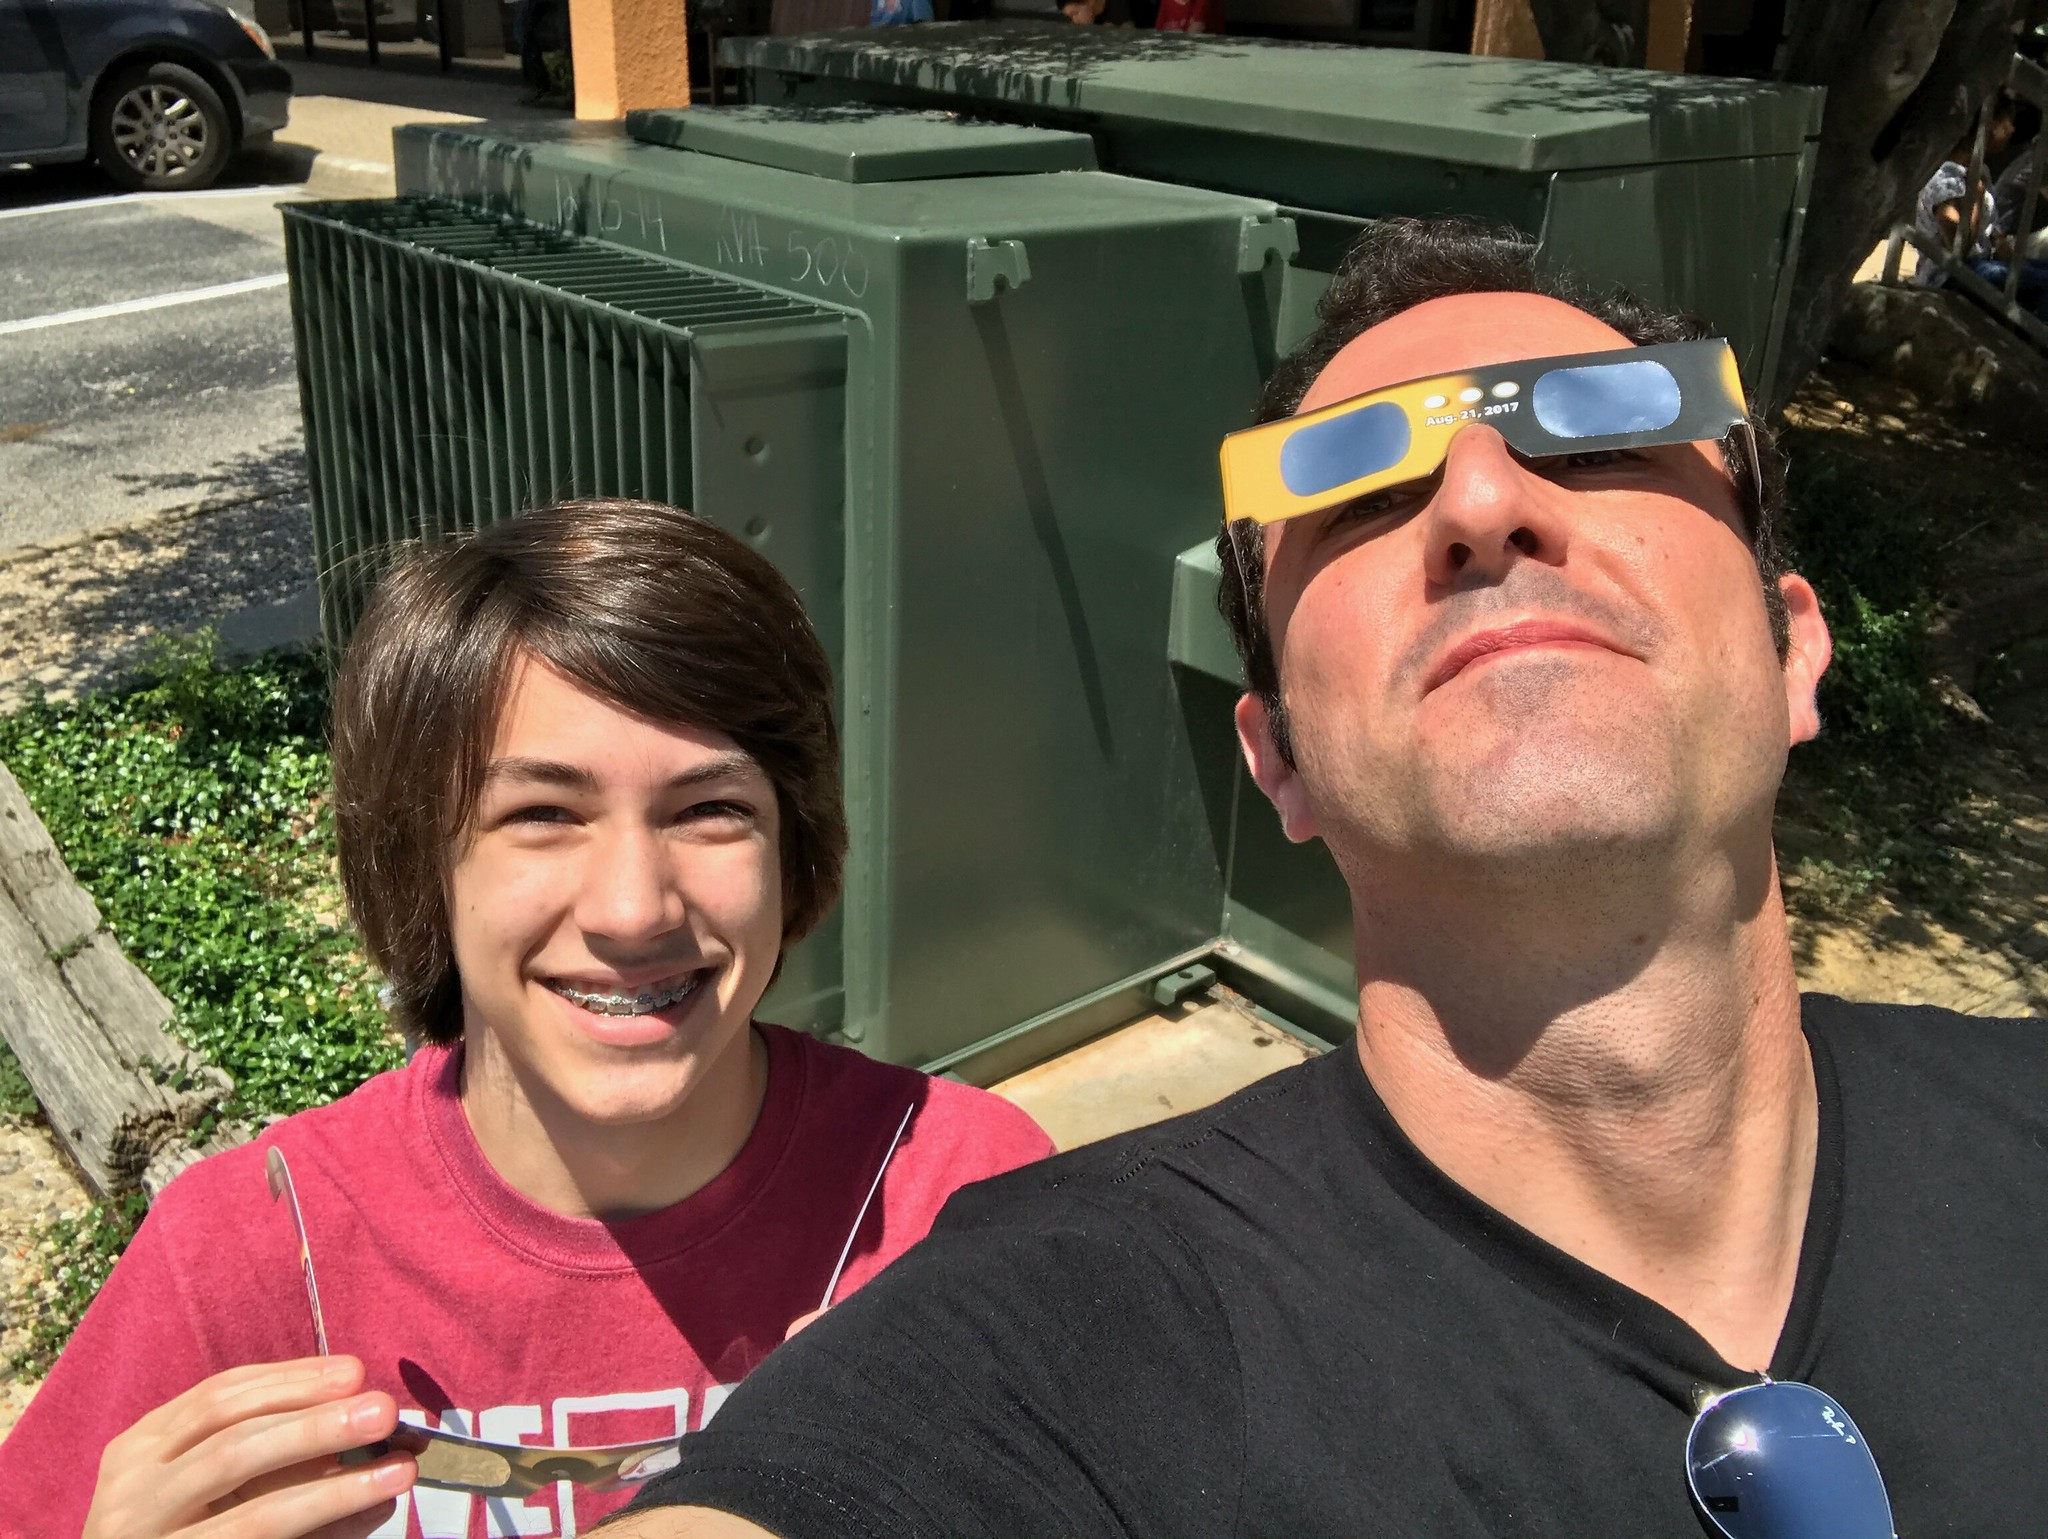 Father and son enjoying the eclipse